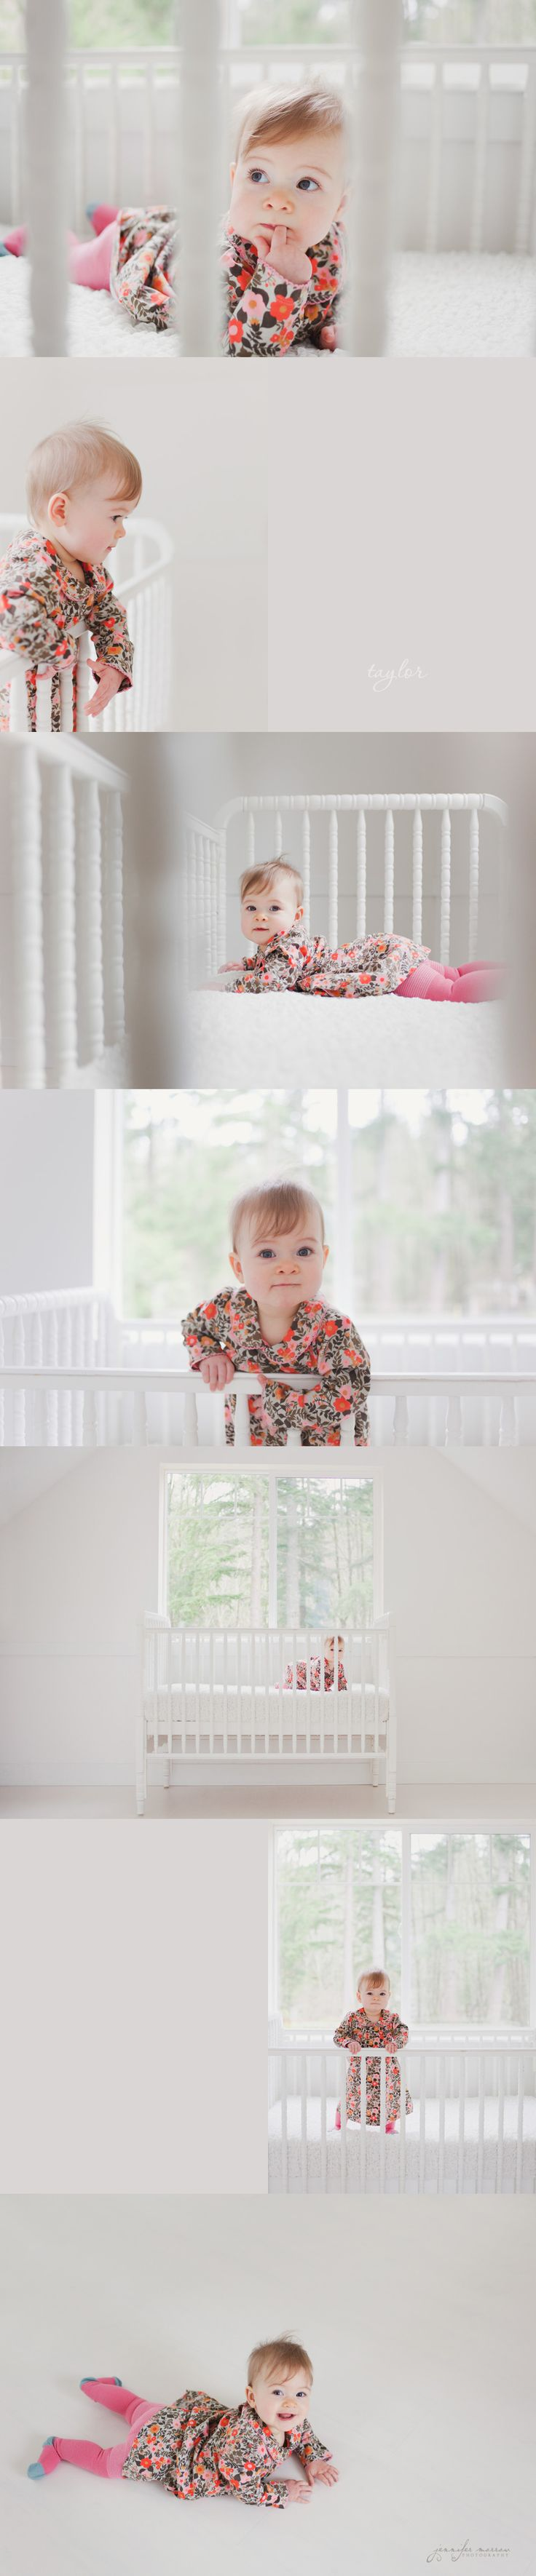 Baby session, 10 months old, white crib --- this is actually quite inventive, using a child's natural environment and their everyday clothes, as opposed to ridiculous poses and props